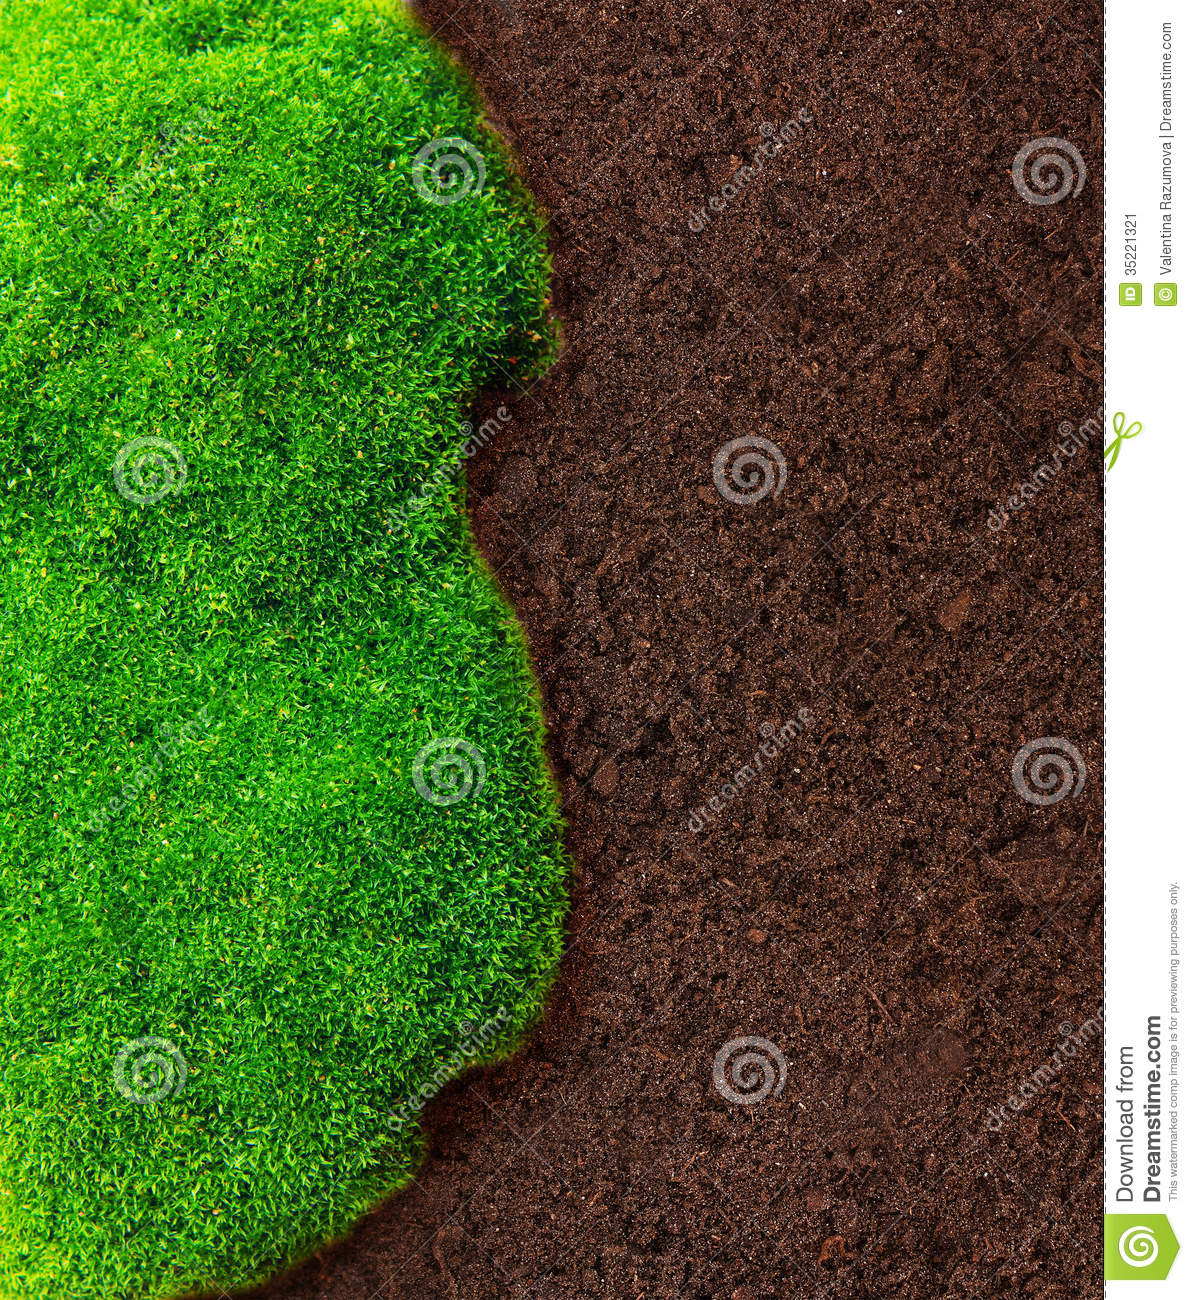 Green grass and soil stock image image 35221321 for Soil and green